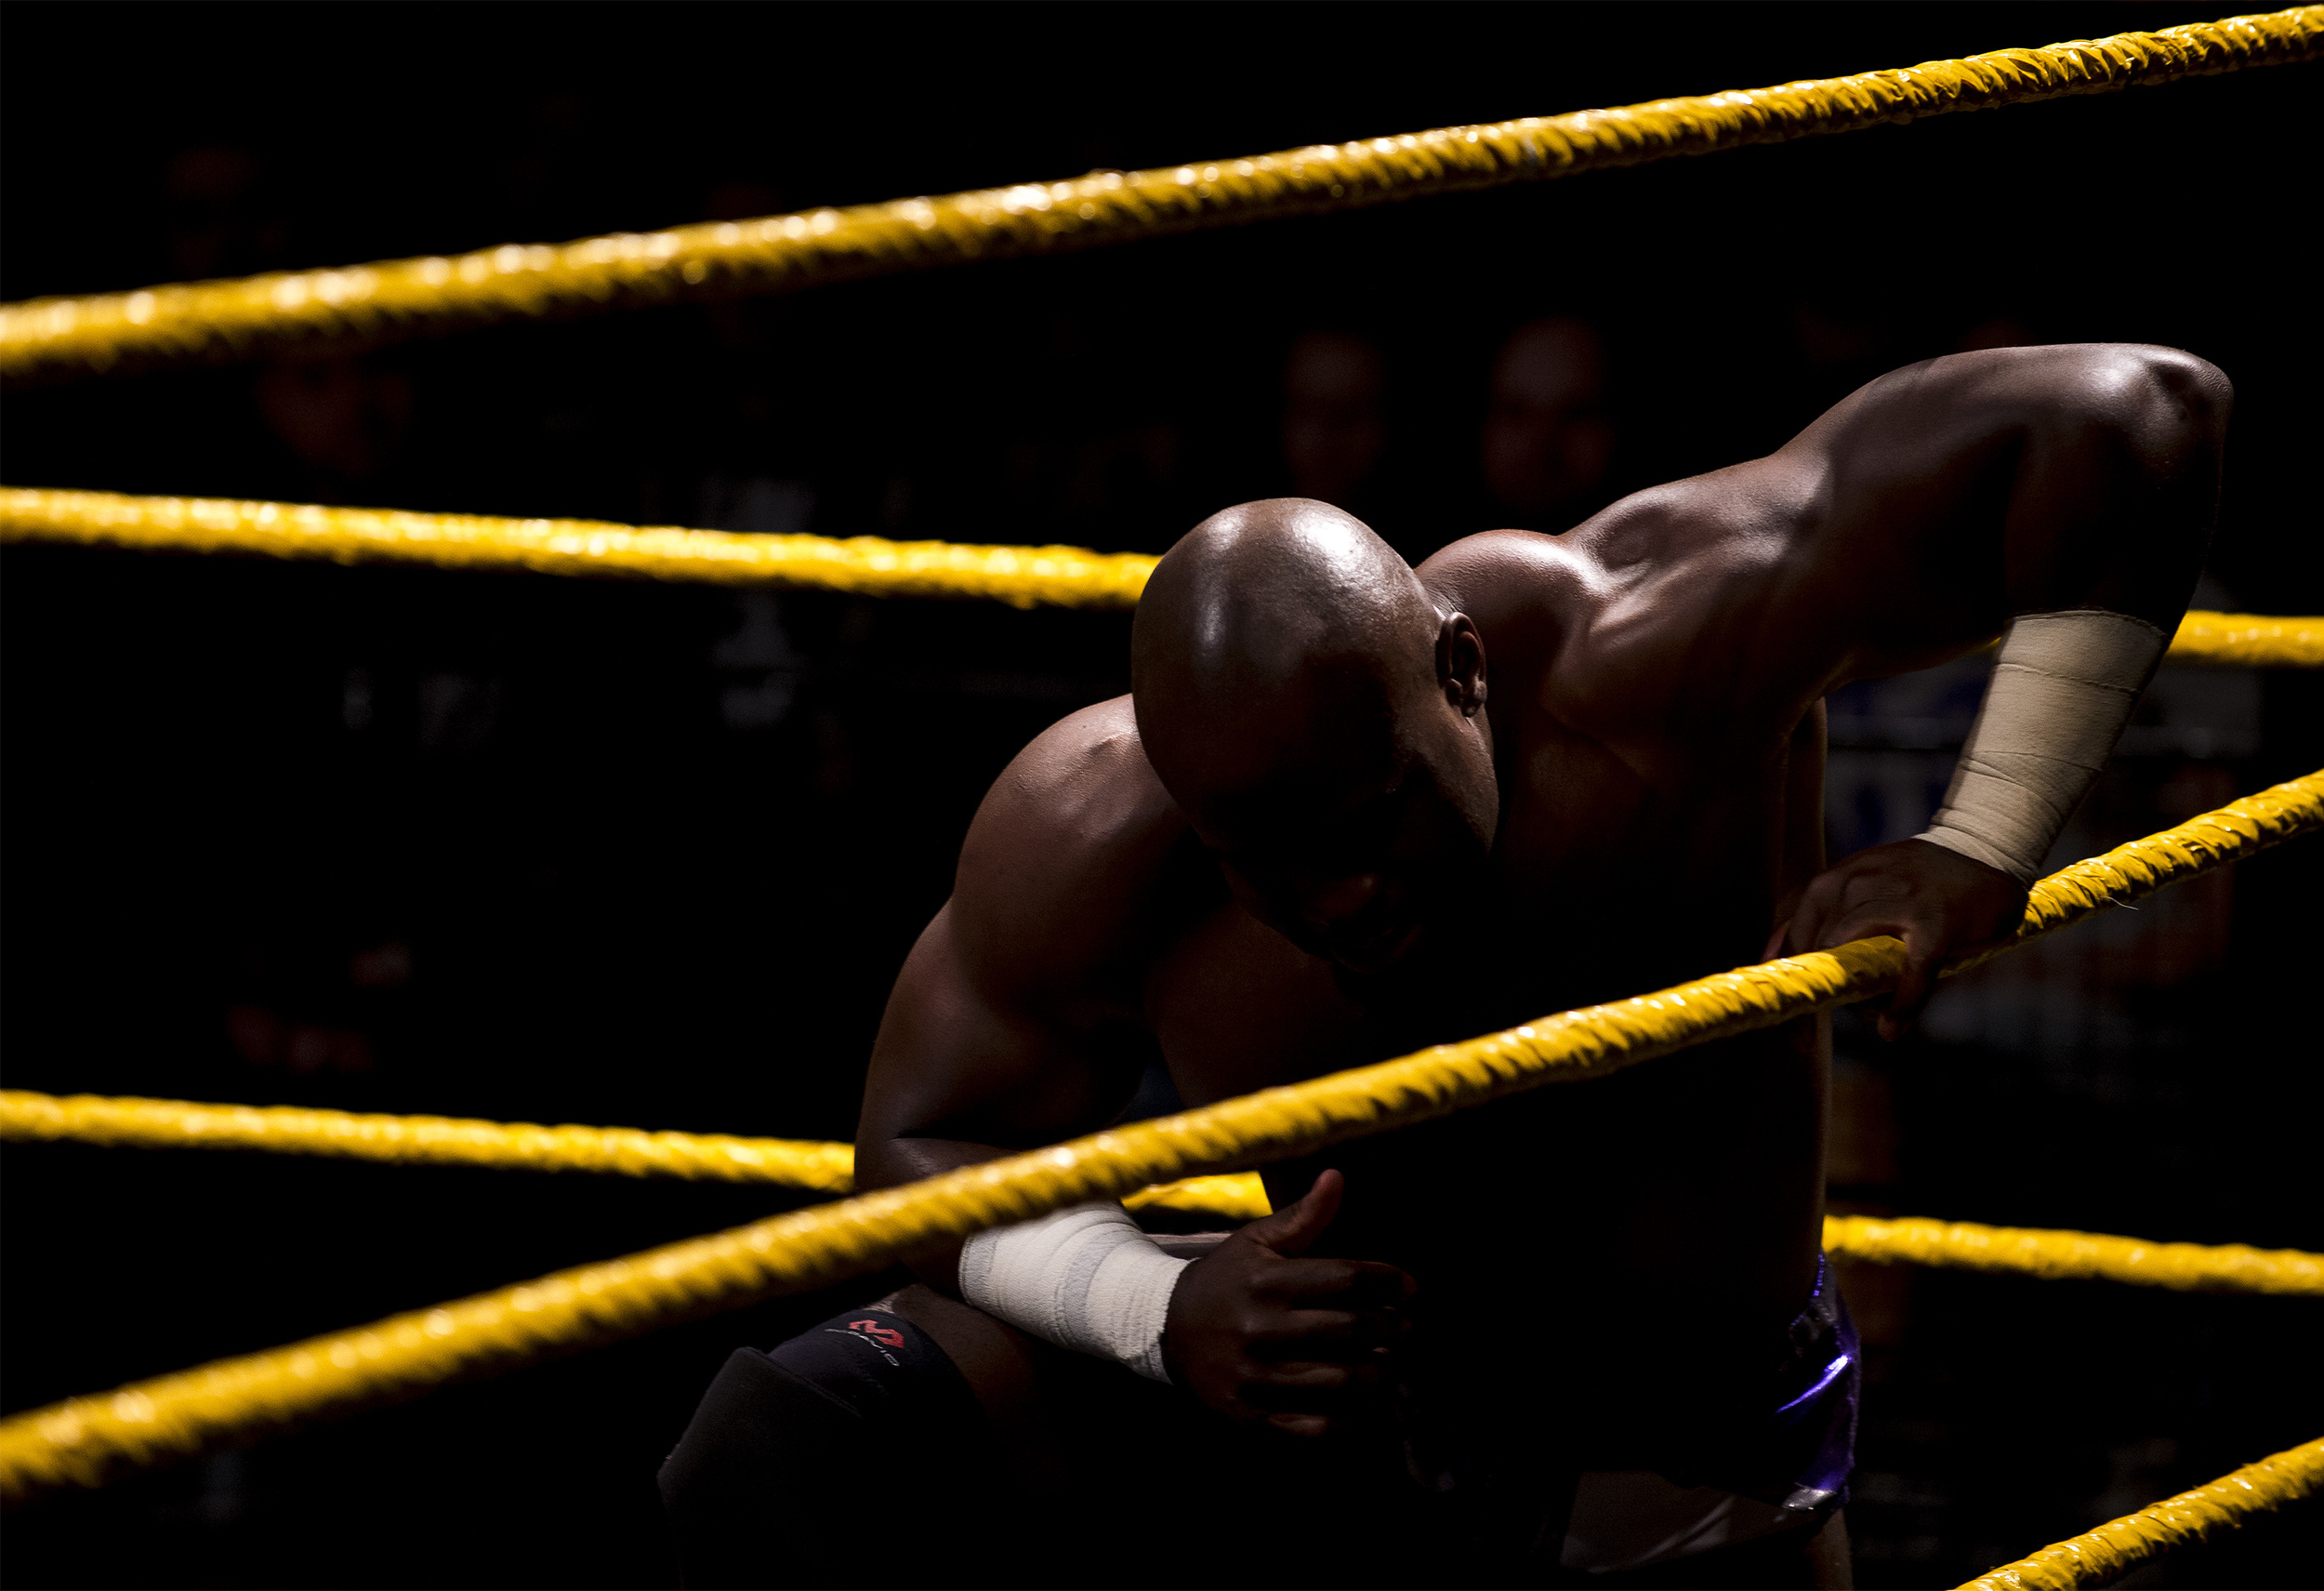 A WWE star takes a break on the ropes during a match in the LC Pavilion during the Arnold Sports Festival held in Columbus, Ohio.